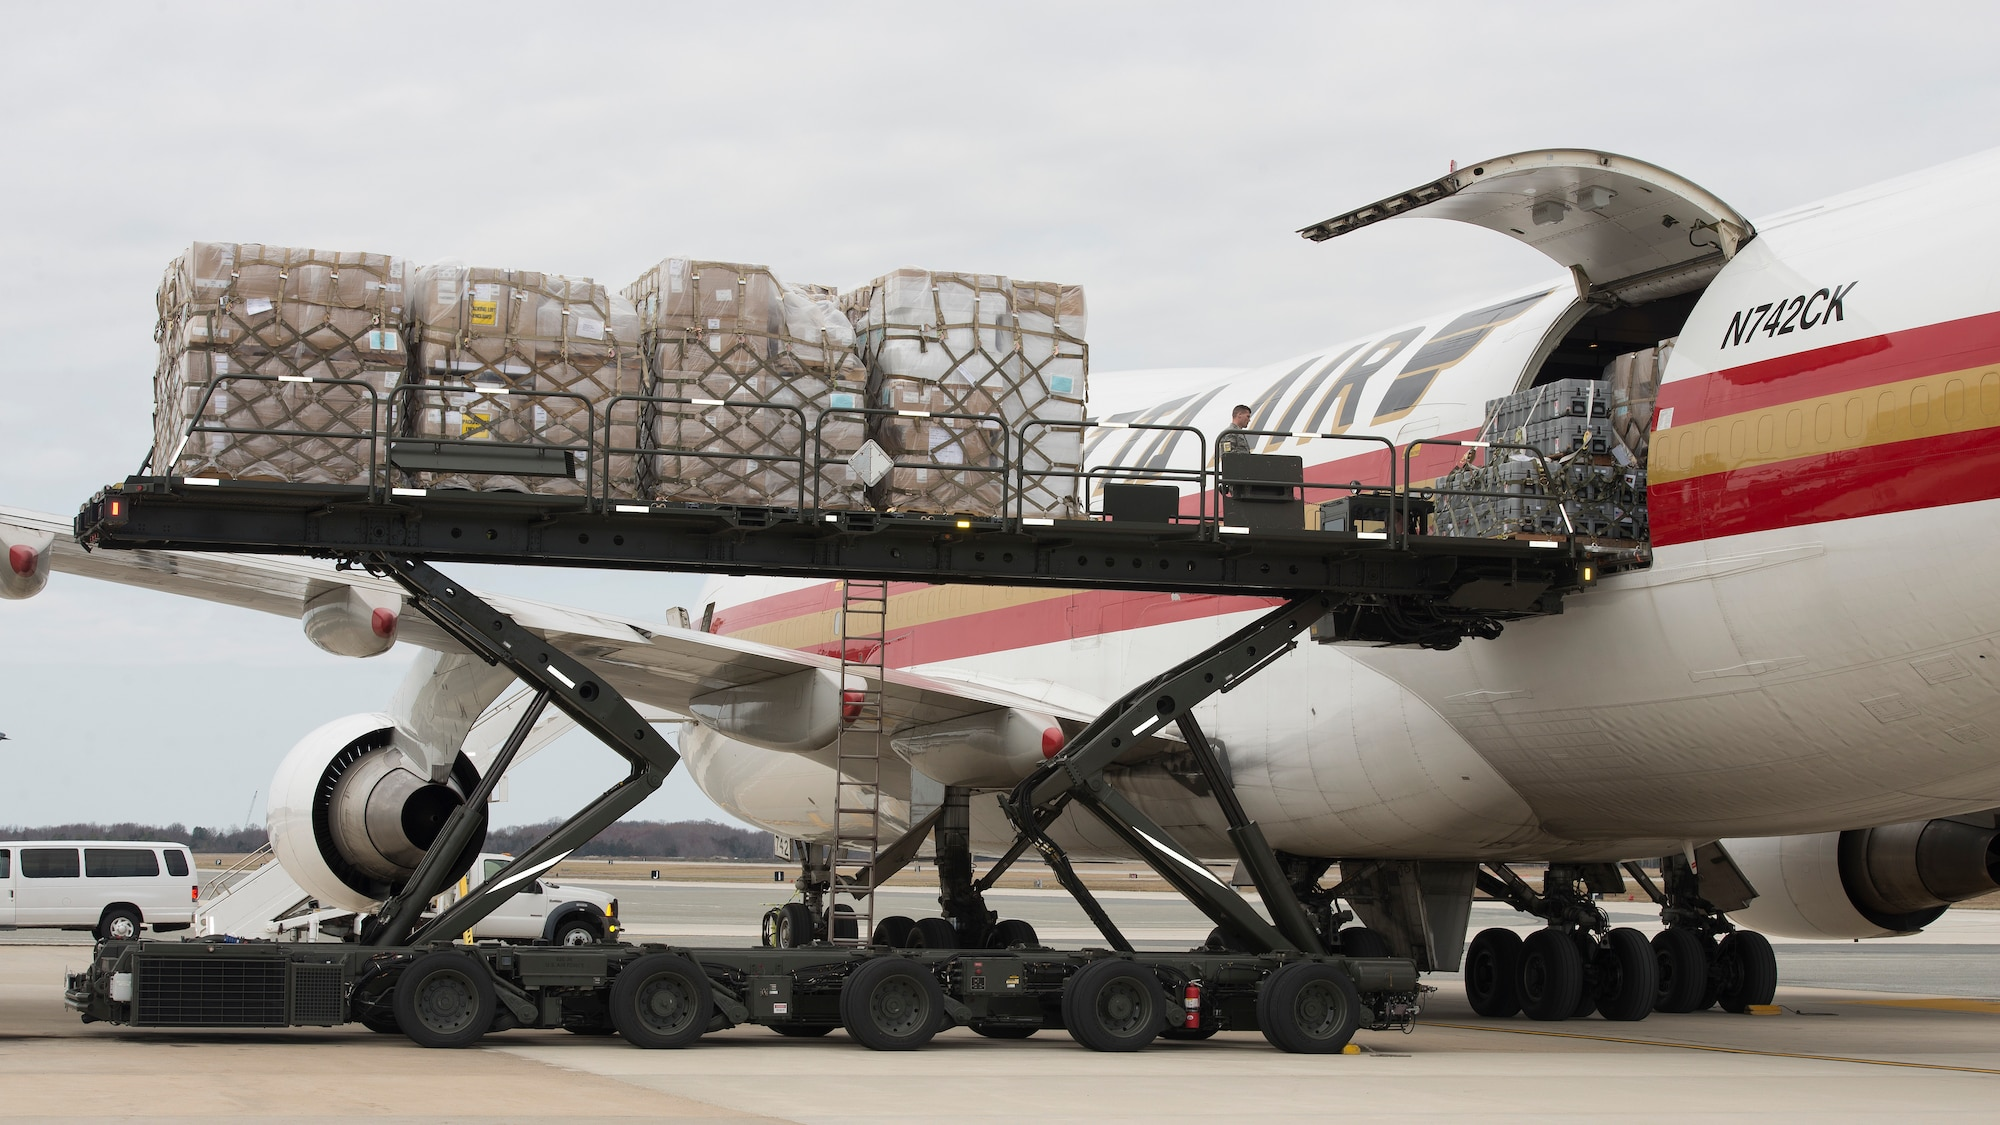 Cargo pallets are loaded onto a Kalitta Air Boeing 747 by 436th Aerial Port Squadron Airmen March 24, 2017, at Dover Air Force Base, Del. In addition to military airlifters, Dover AFB regularly sees civilian cargo planes that support Department of Defense missions. (U.S. Air Force photo by Senior Airman Zachary Cacicia)